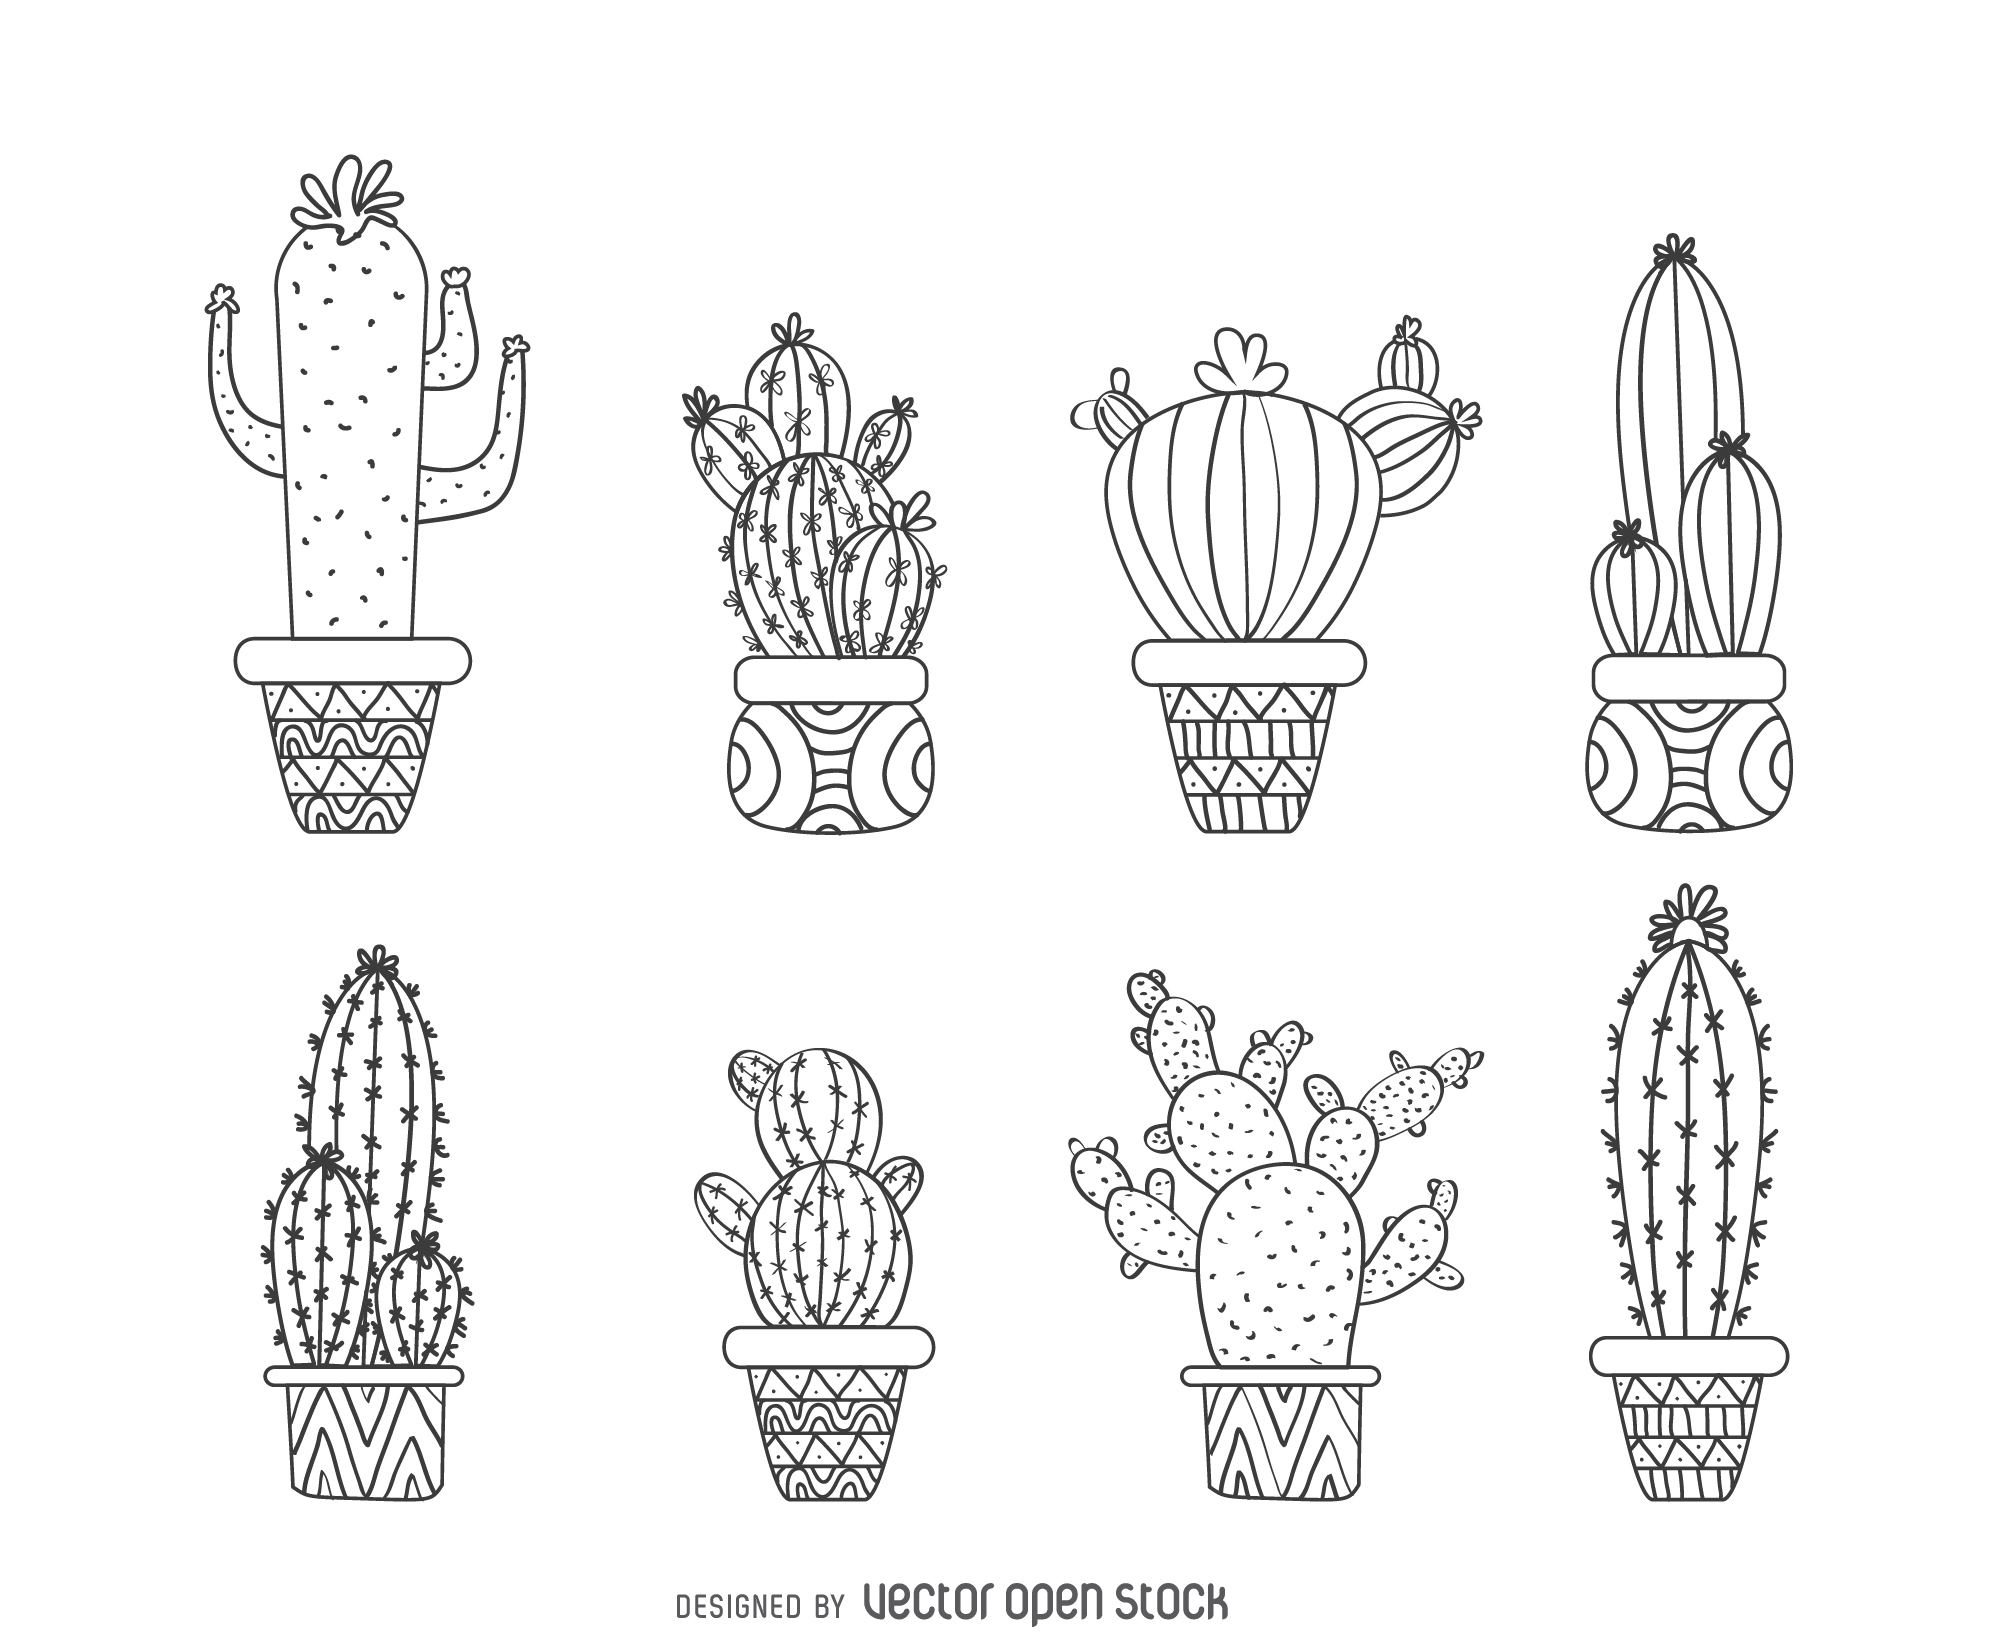 Drawn cactus Cactus outline collection Download Vector